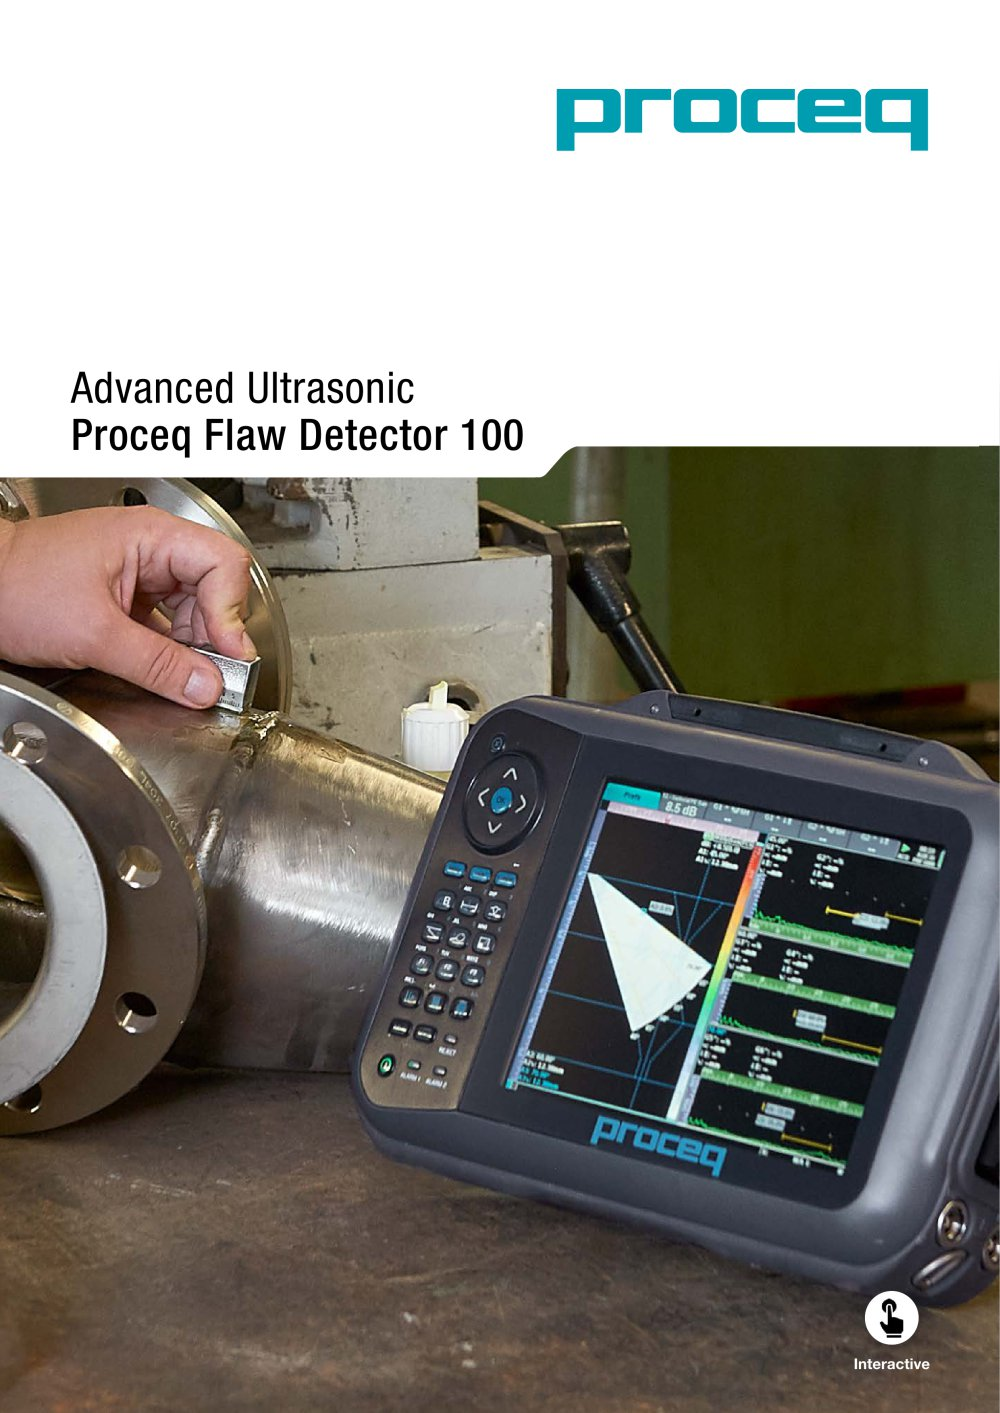 Detection technicians pdf ultrasonic for flaw